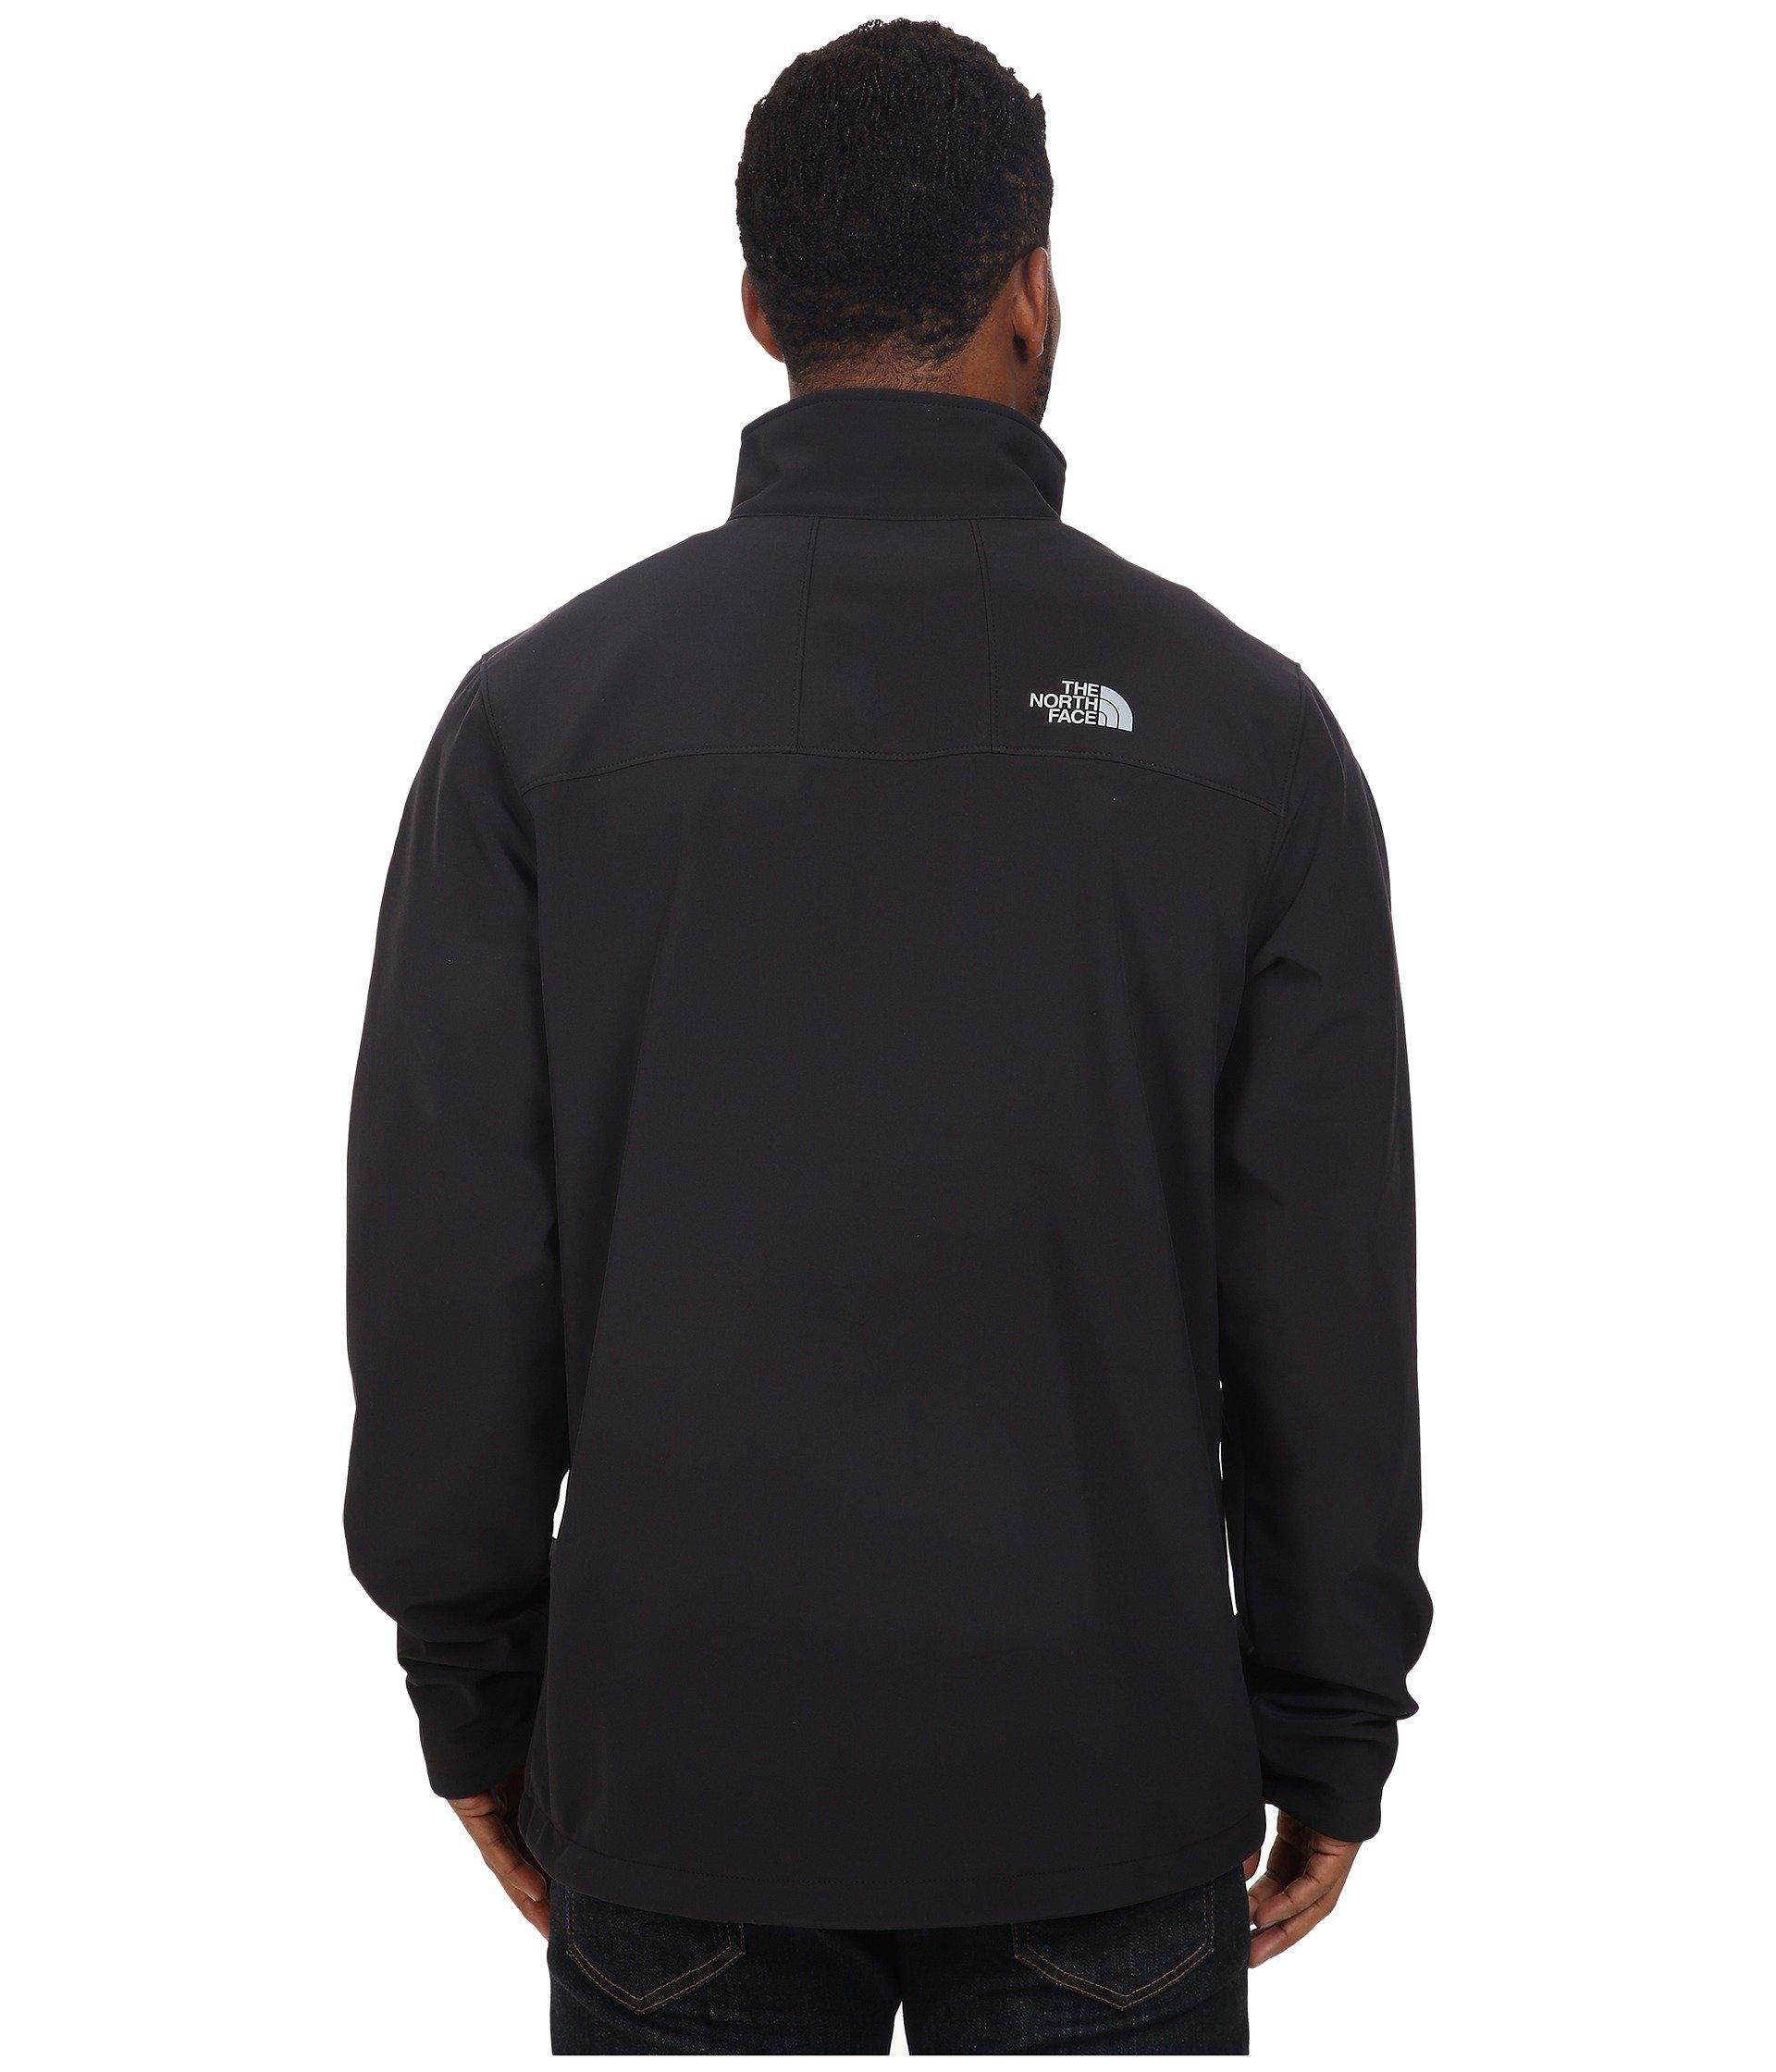 d1bbafe10a The North Face - Green Apex Bionic 2 Jacket - Tall (tnf Black) Men s. View  fullscreen